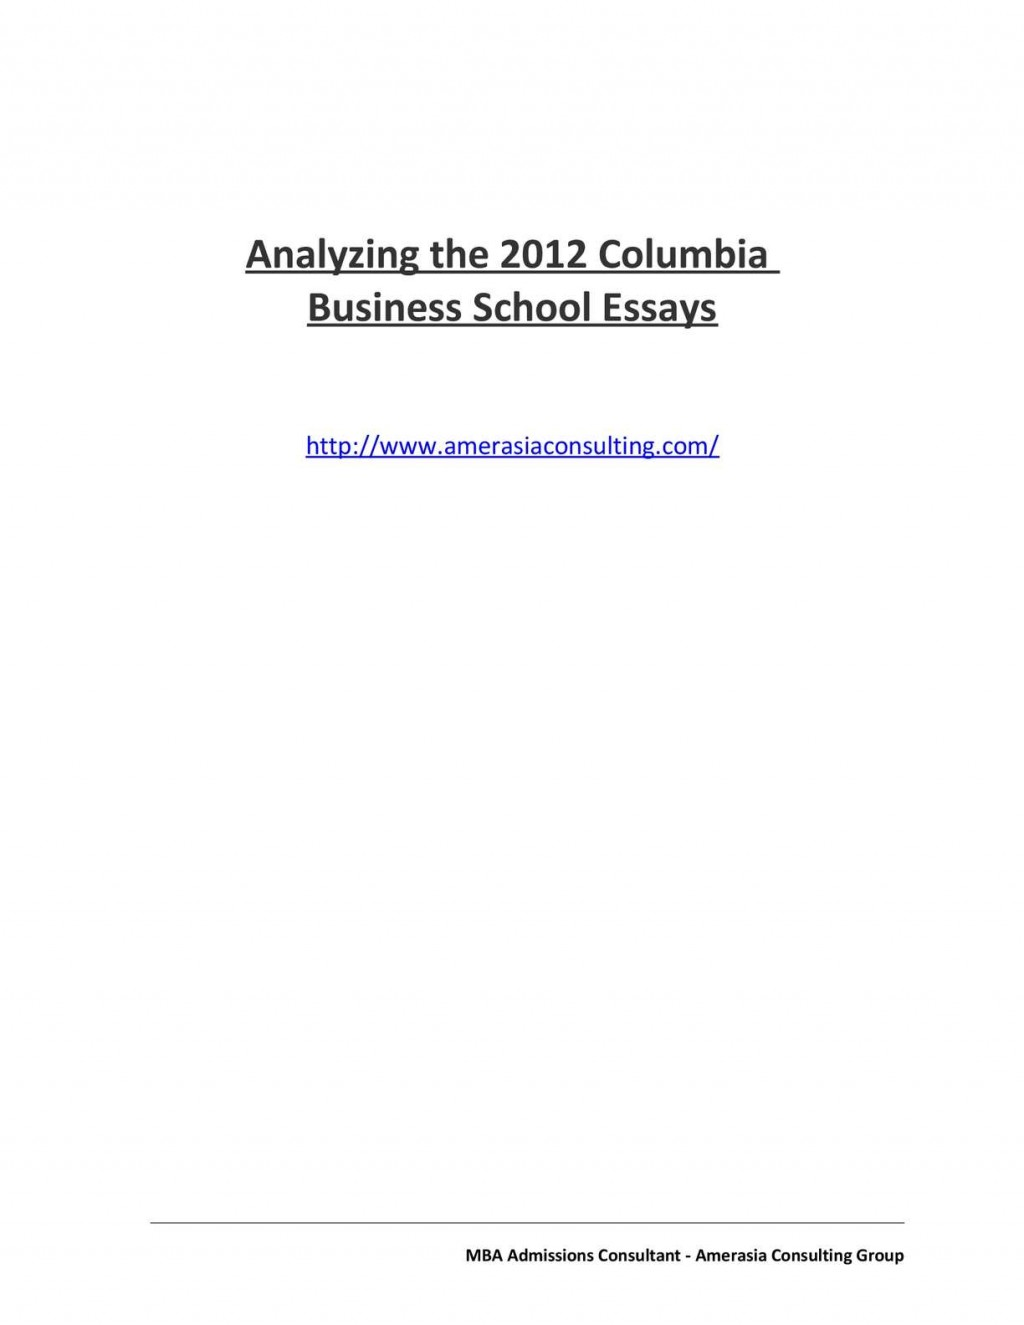 017 Essay Example Columbia Essays Analyzing The Business School Analys Admission Analysis Help Examples Shocking Application That Worked Mba Tips Large